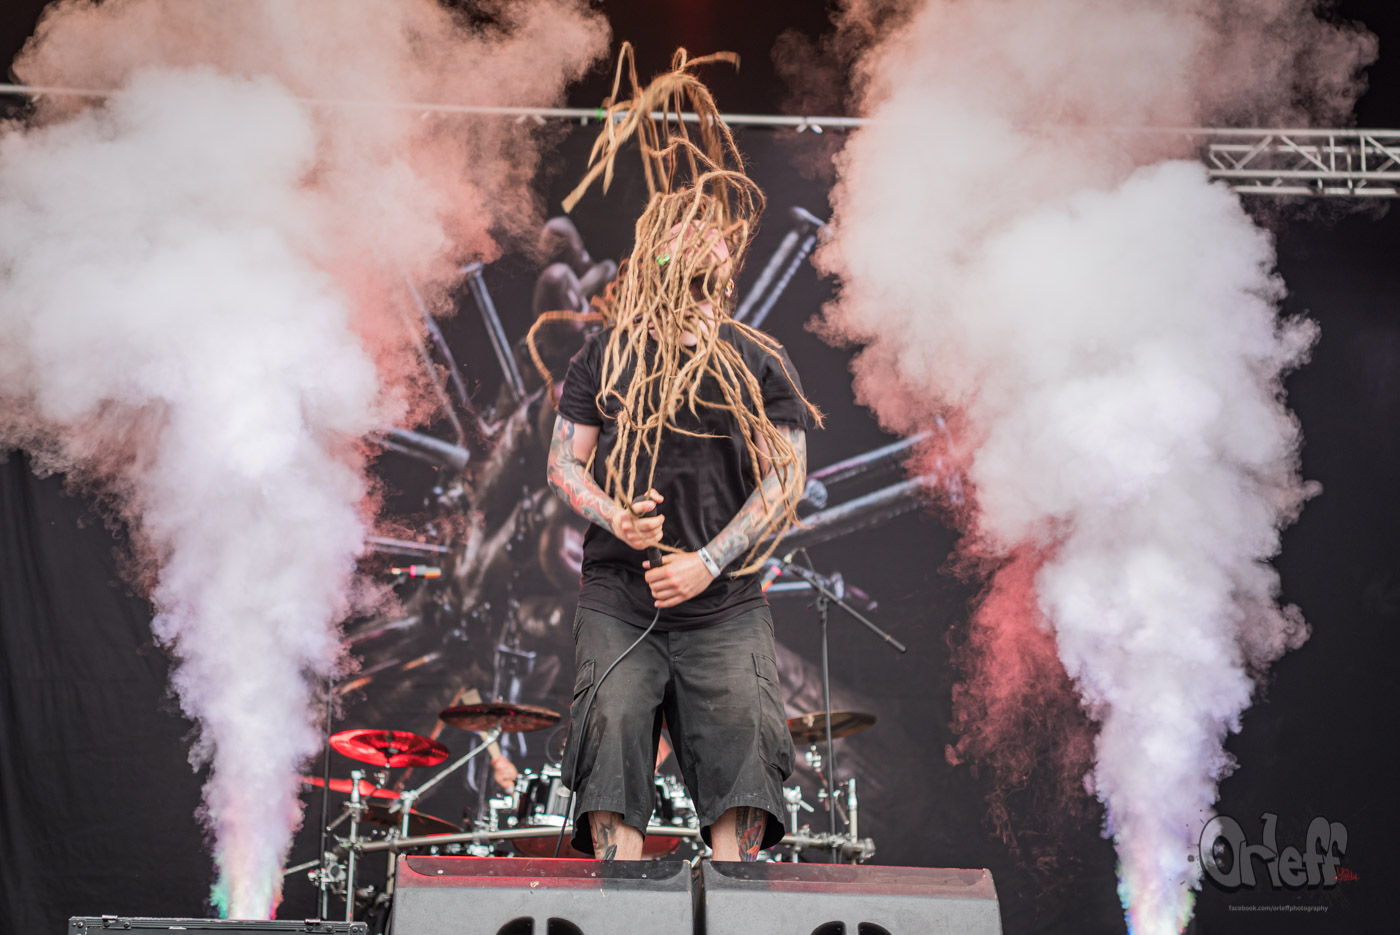 Decapitated @ MetalDays Festival 2019